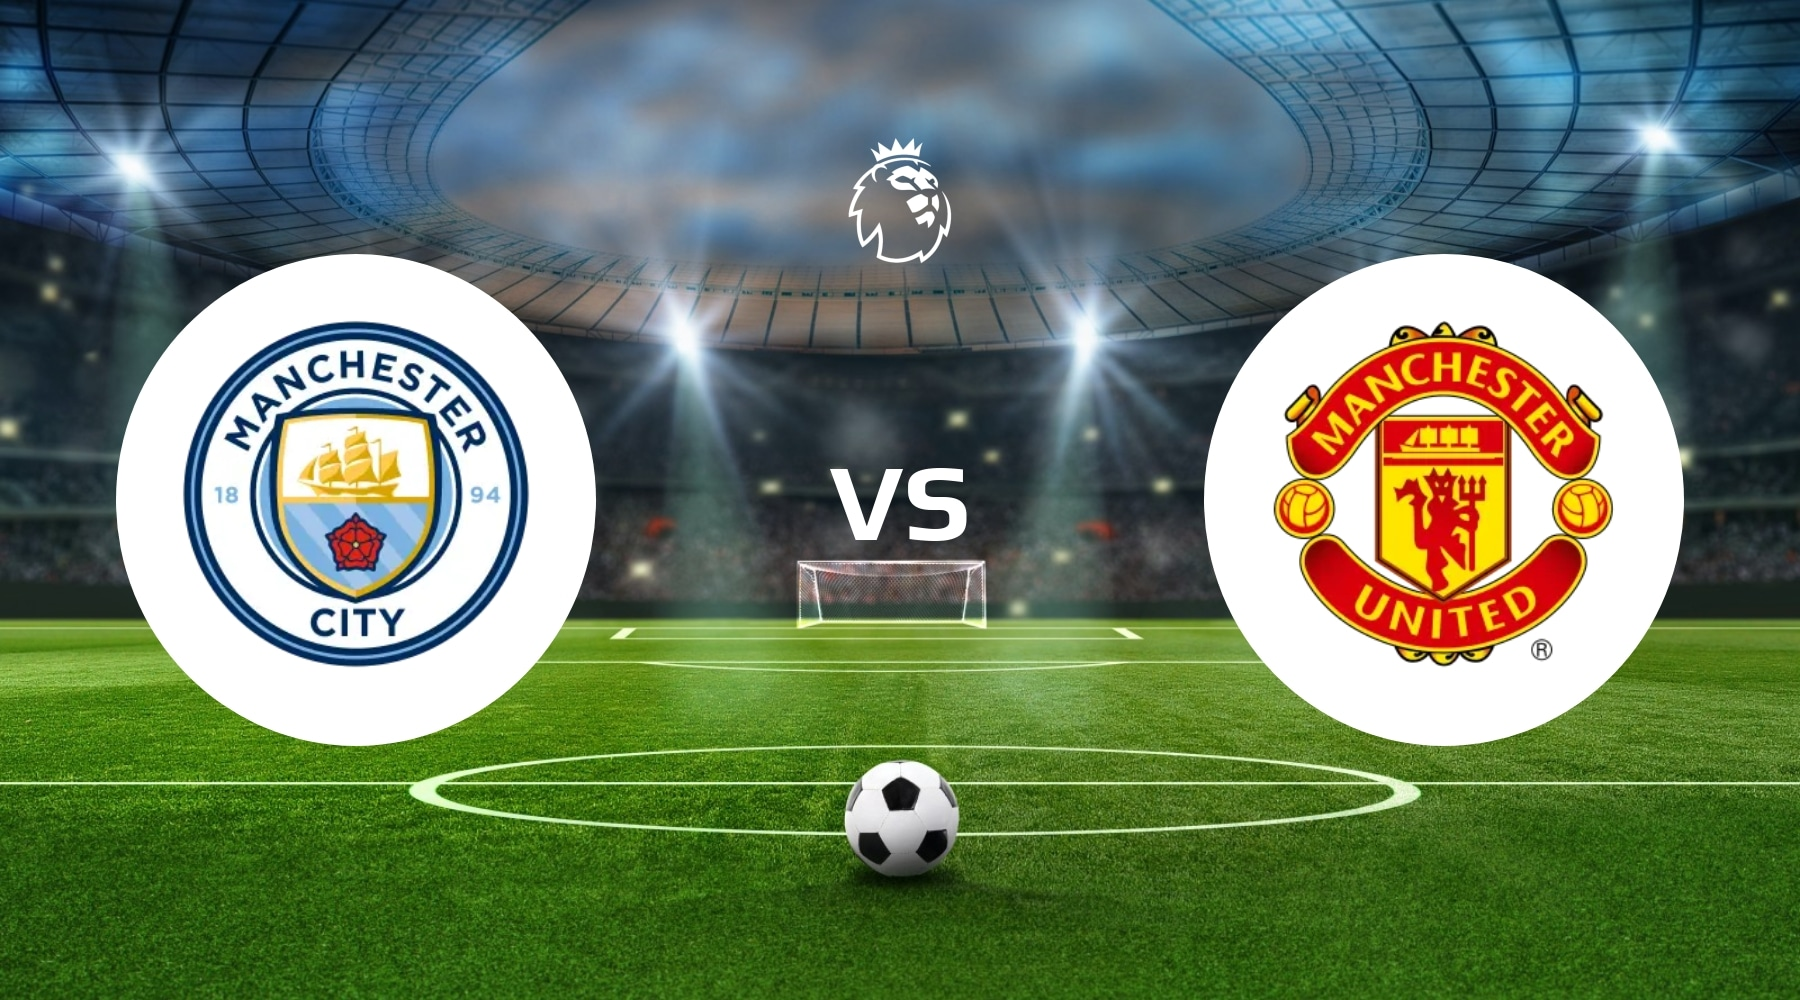 Manchester City vs Manchester United Betting